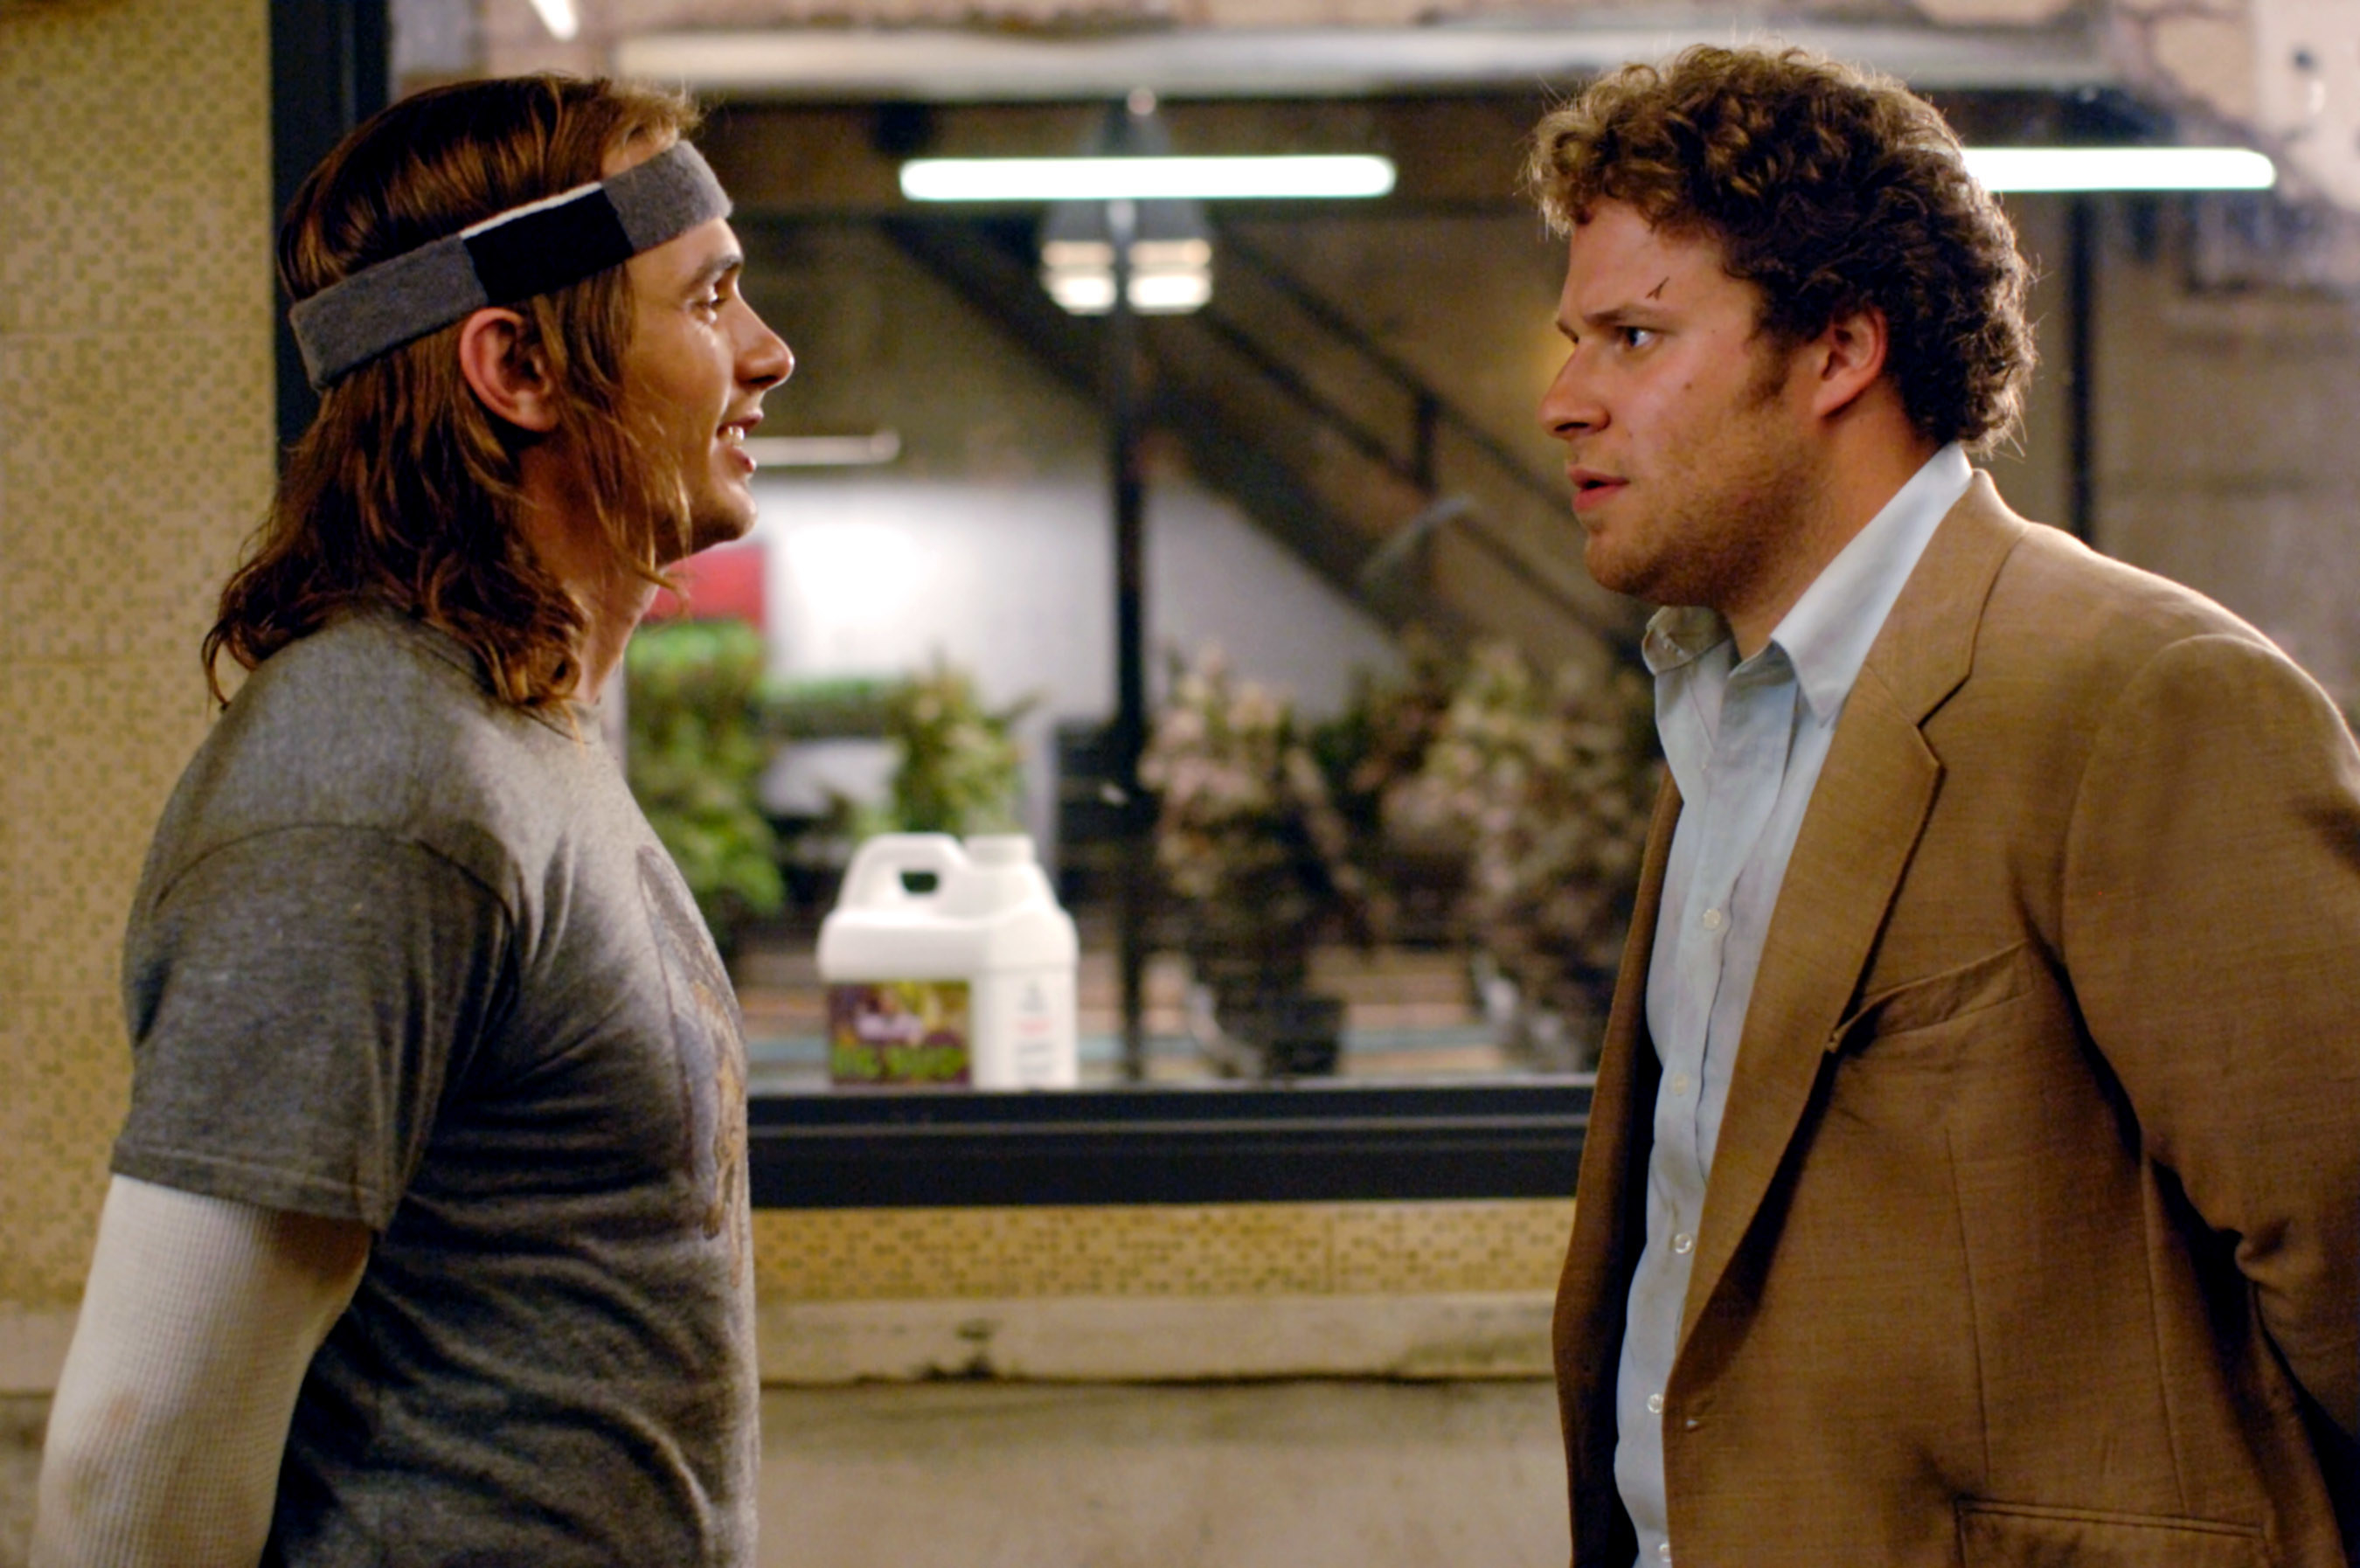 James Franco, in a shirt and headband, and Seth Rogen, in a jacket and blue collared shirt, in Pineapple Express